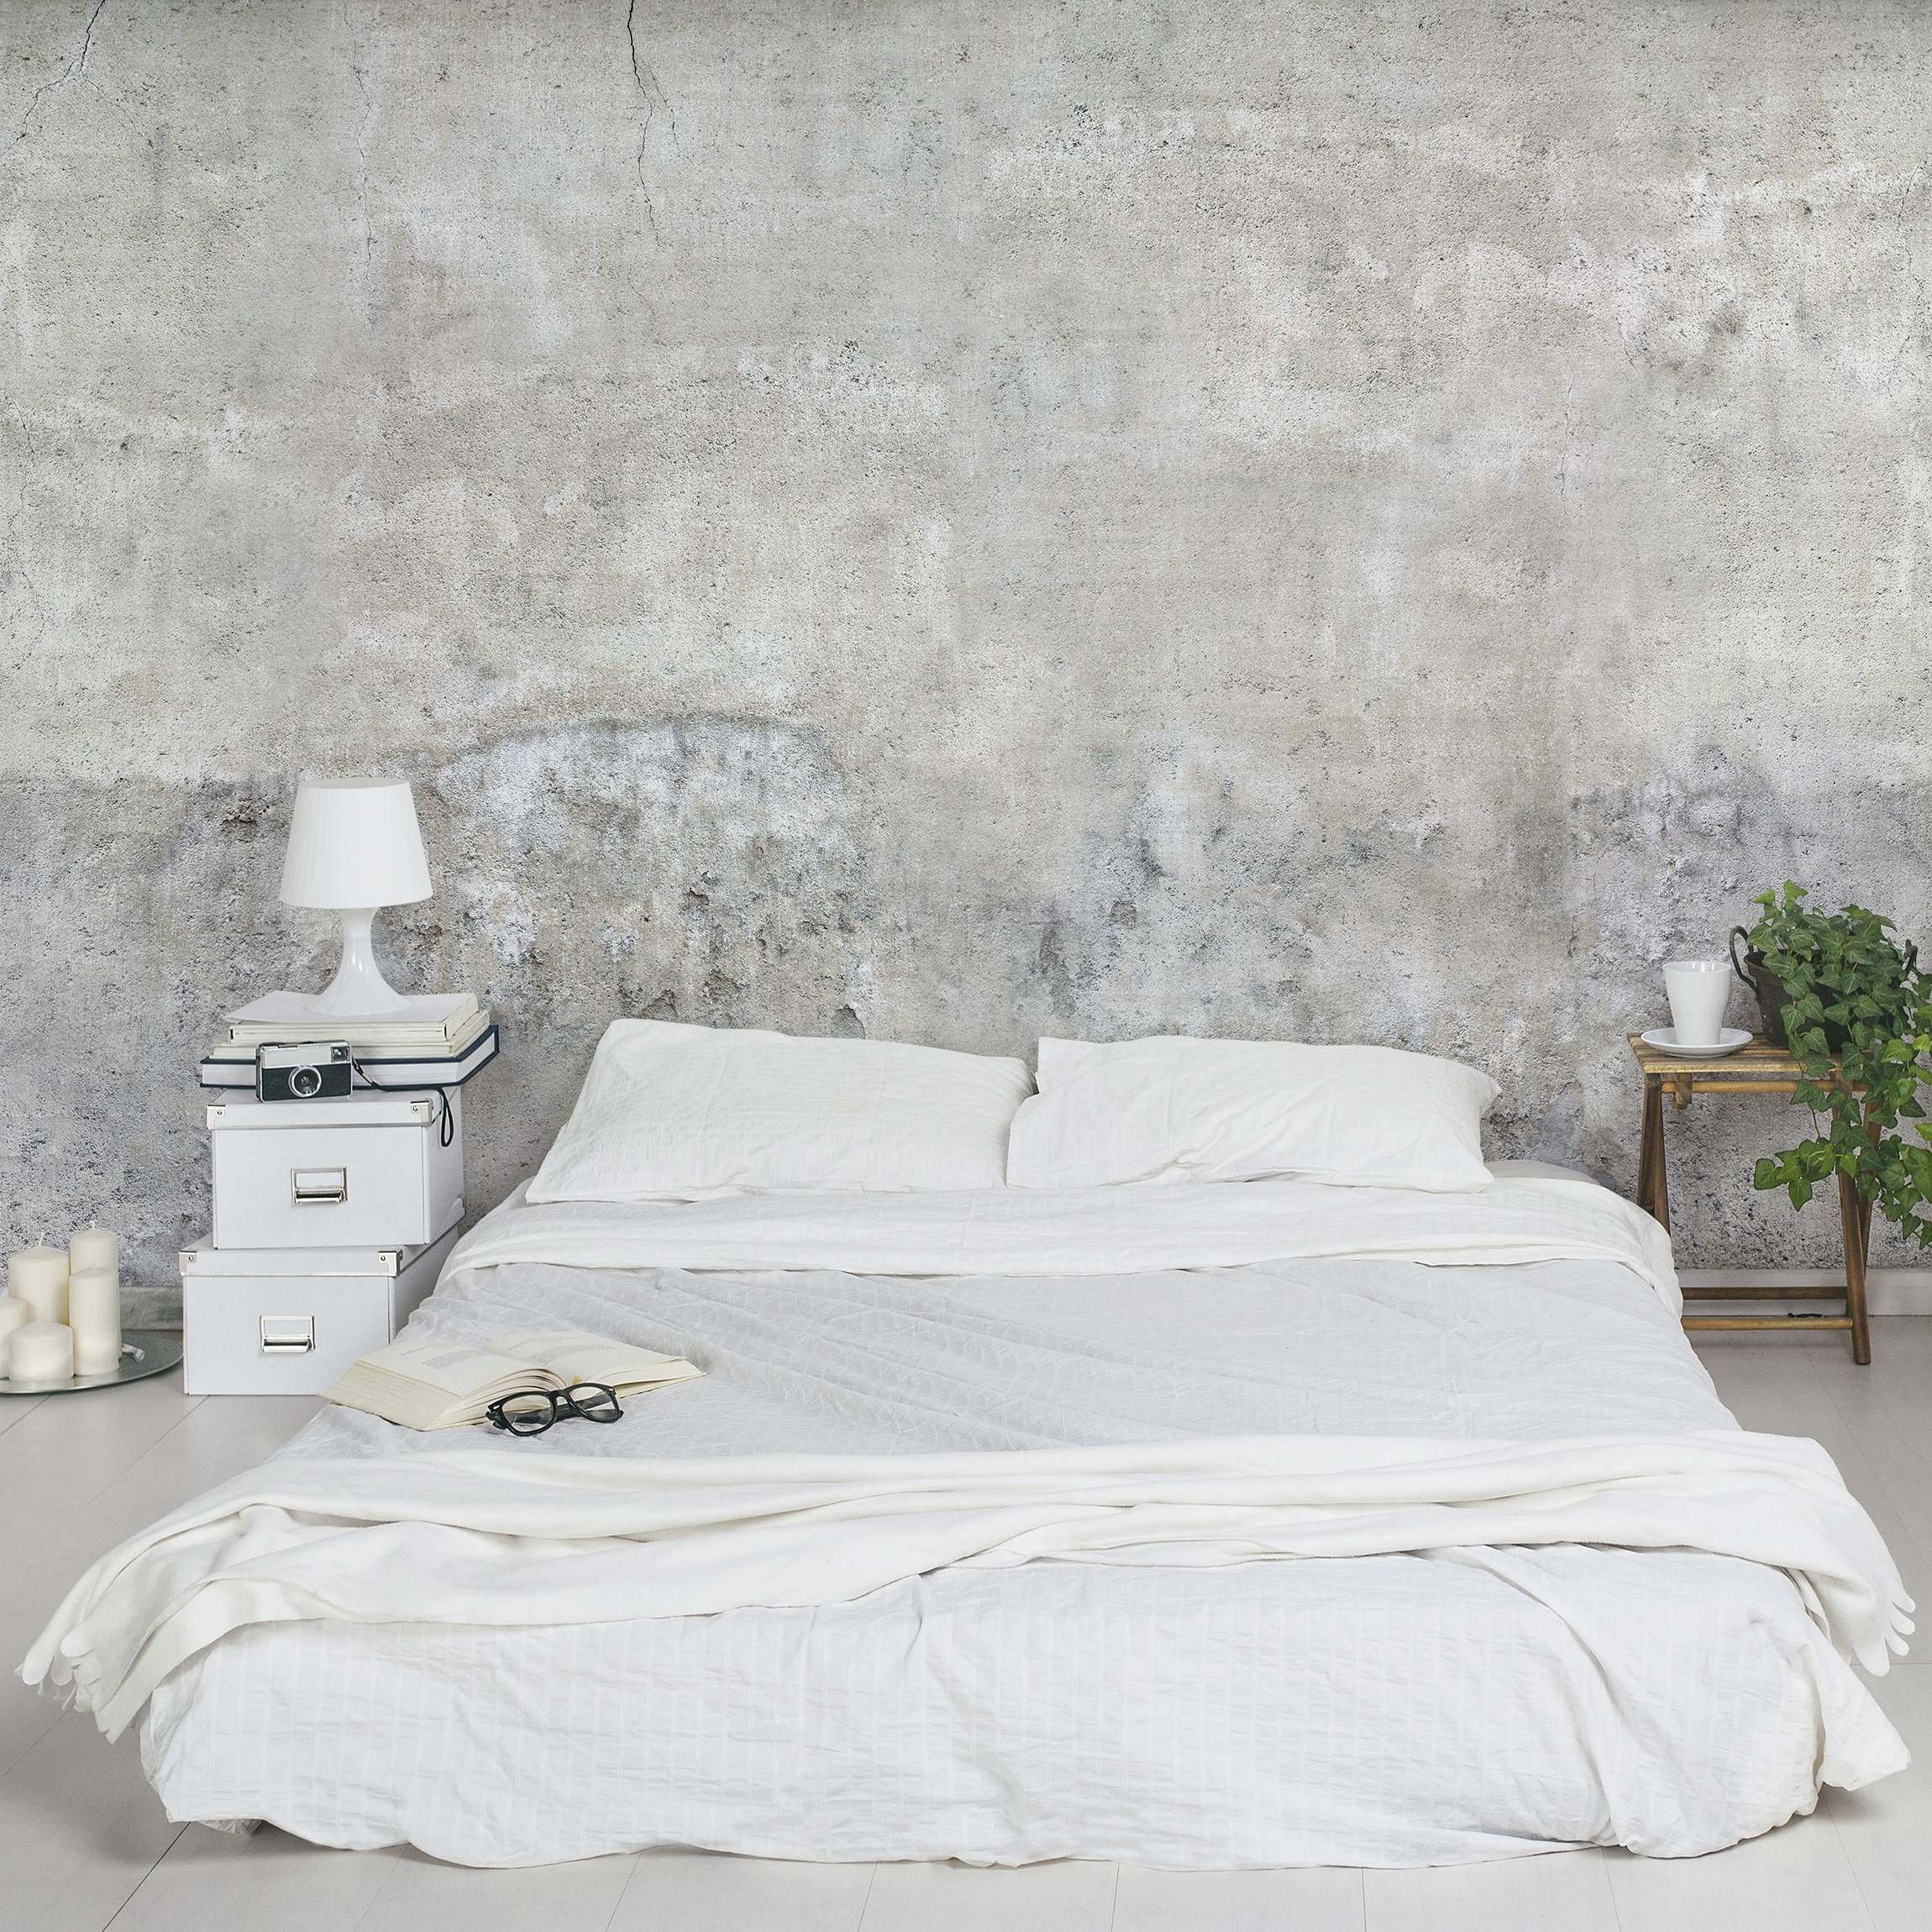 Schlafzimmer Wandgestaltung Stein Quotindustrial Style Quot Bedroom Concrete Wallpaper Int